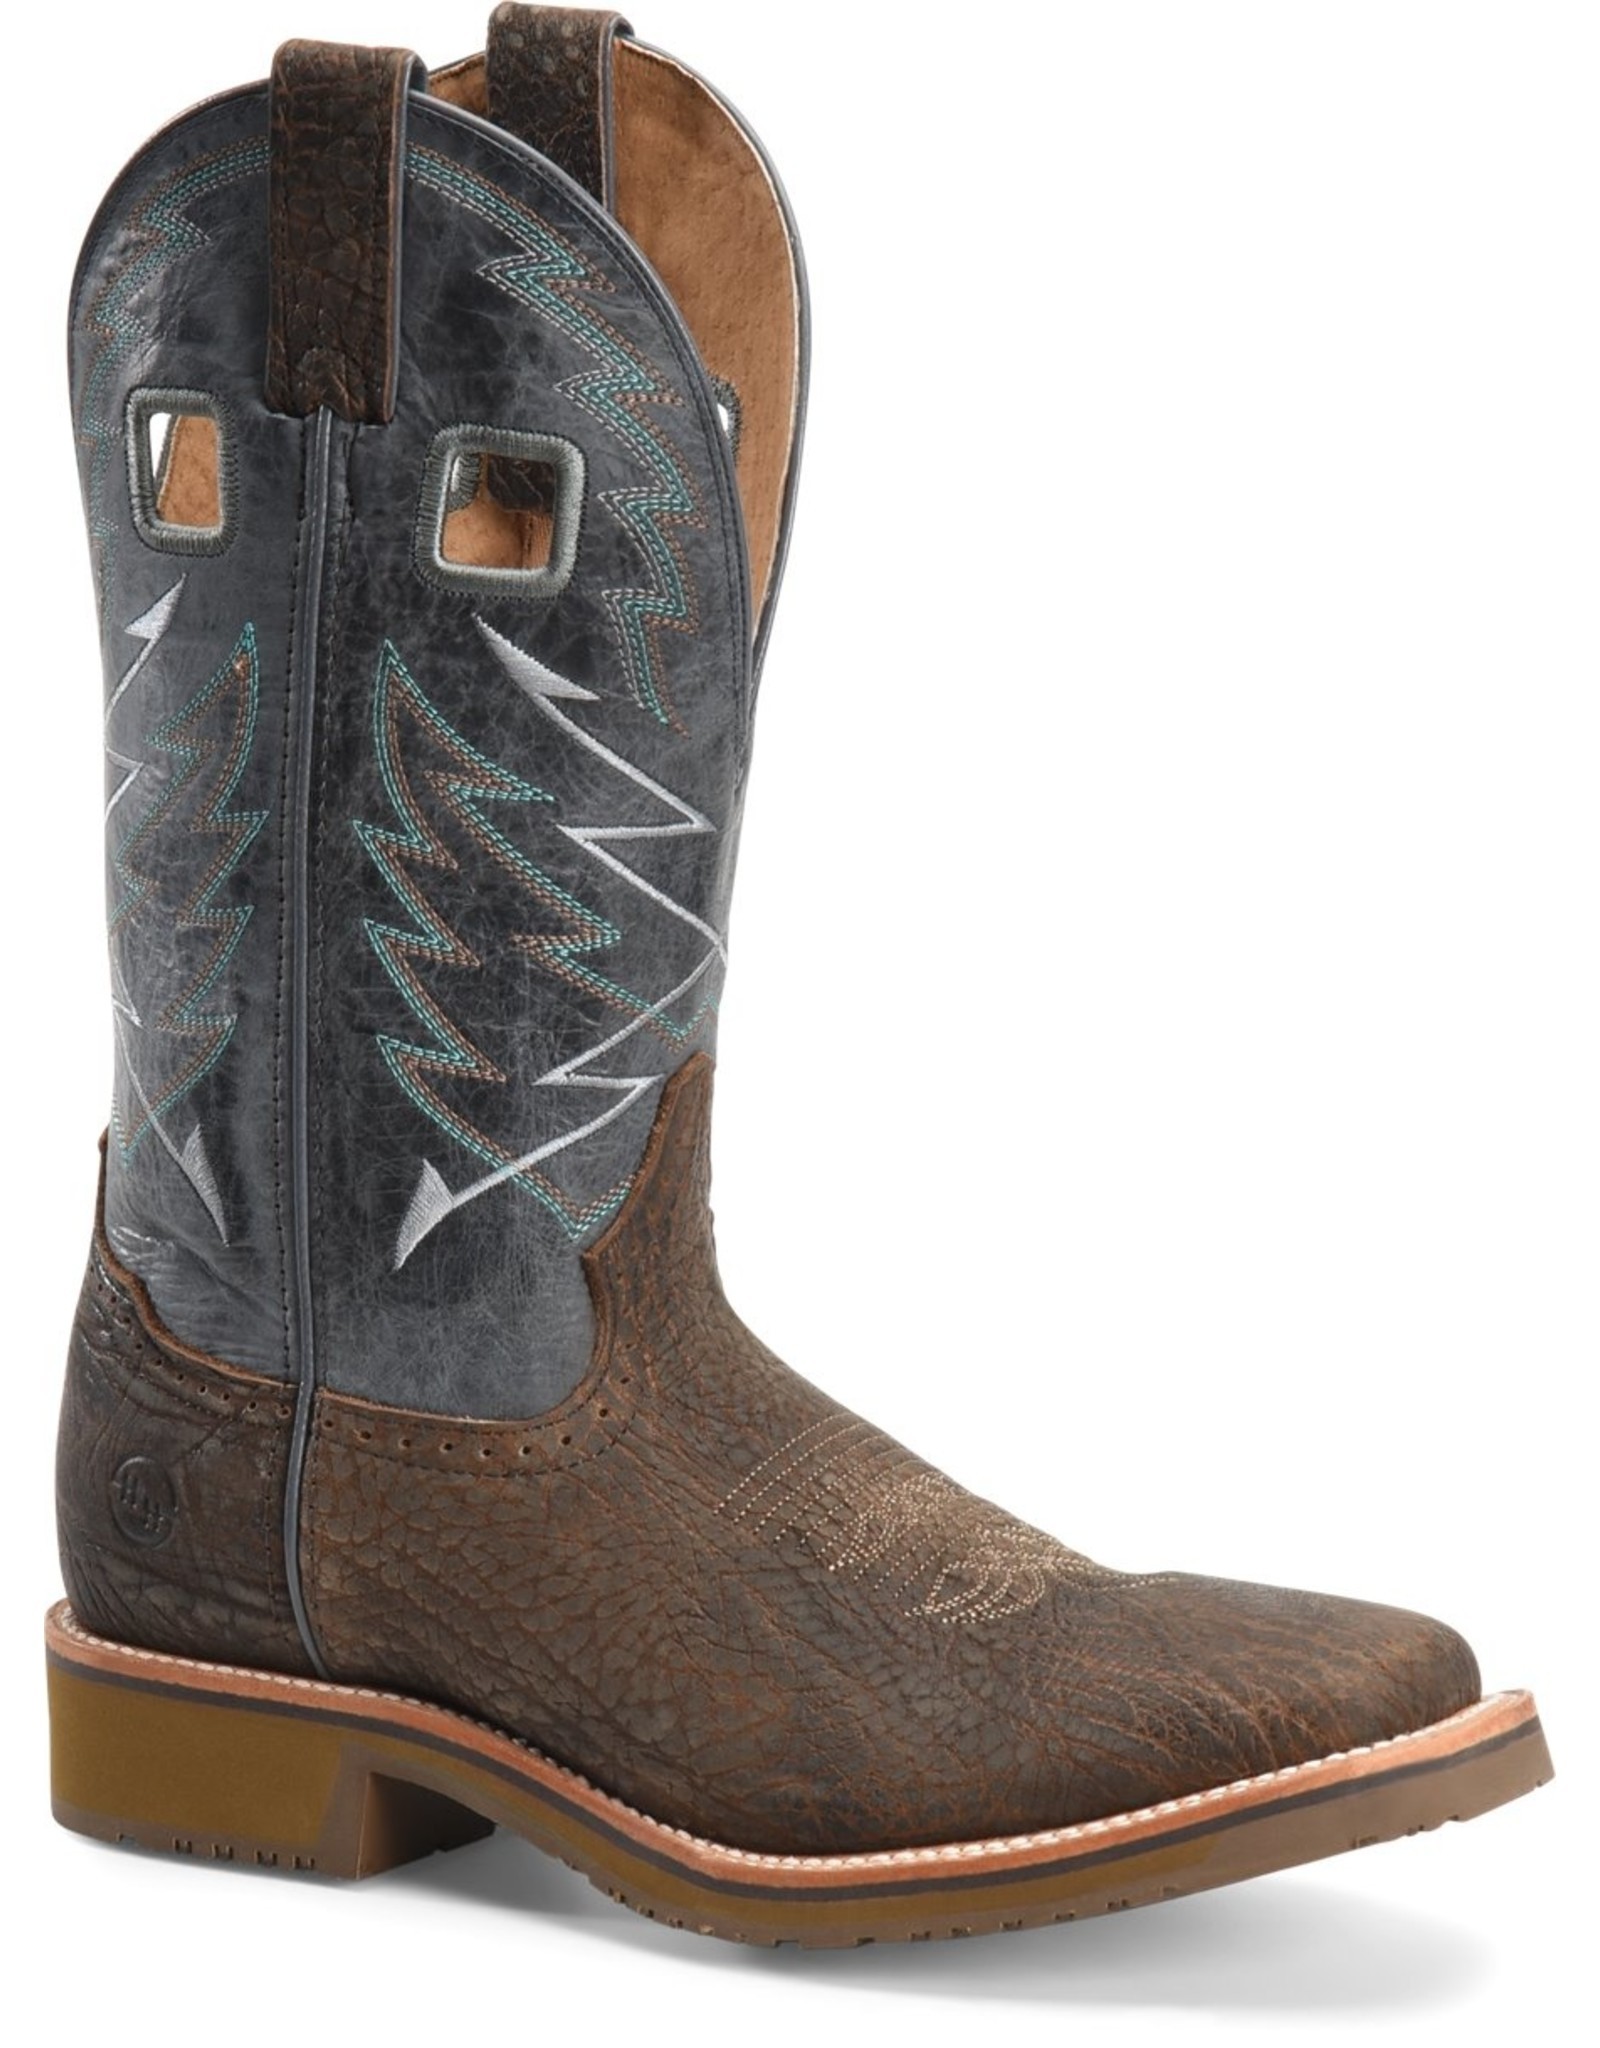 Boots-Men DOUBLE H DH7012 Fernandes